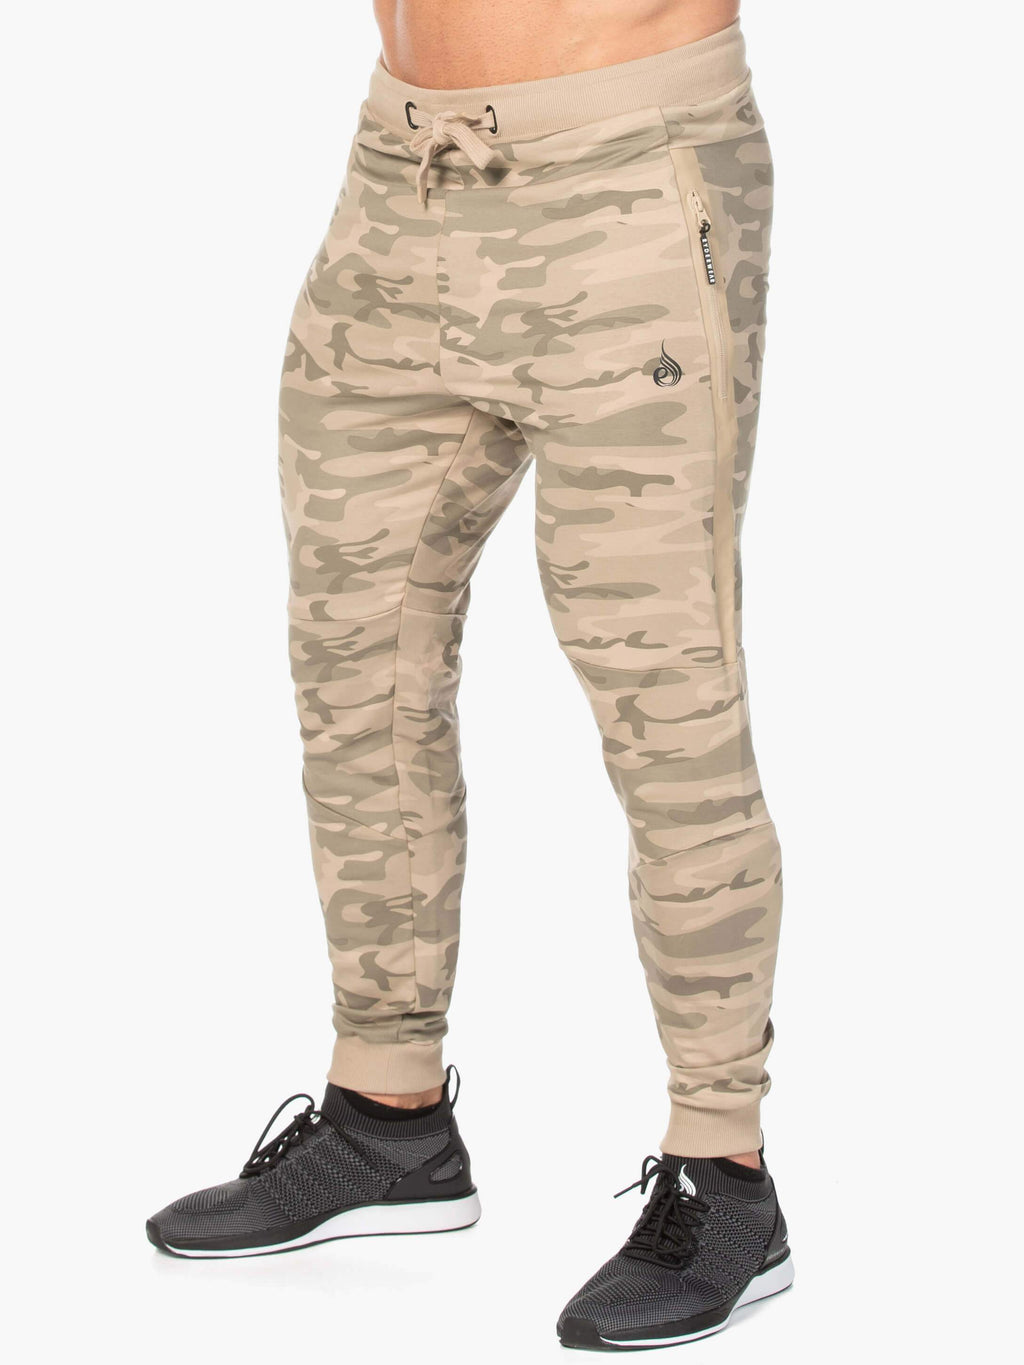 Camo Fleece Track Pant - Tan Camo